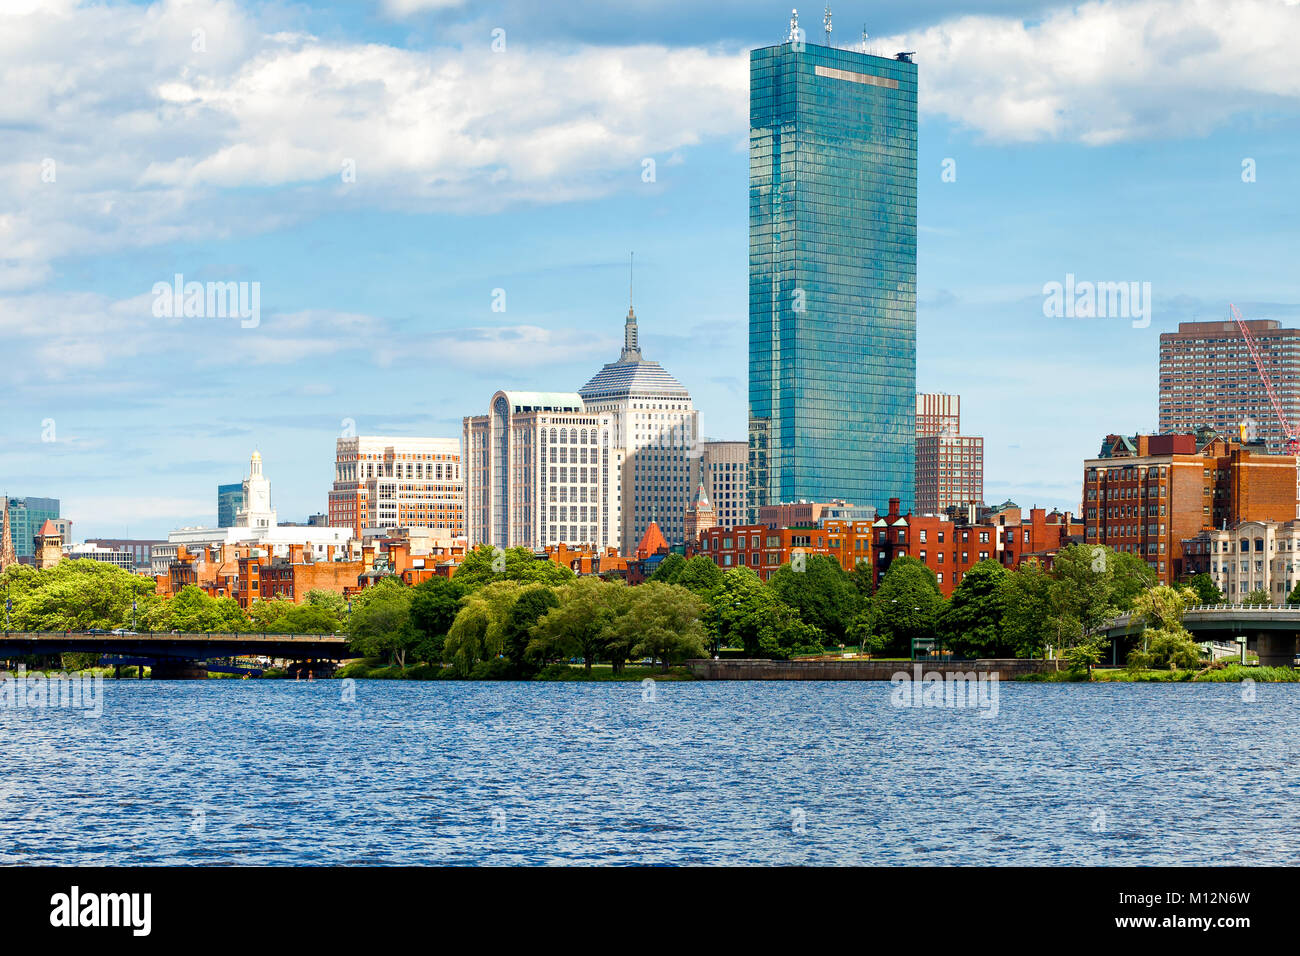 Boston skyline, waterfront and historic Bay Bay neighborhood viewed from the Charles River. Stock Photo